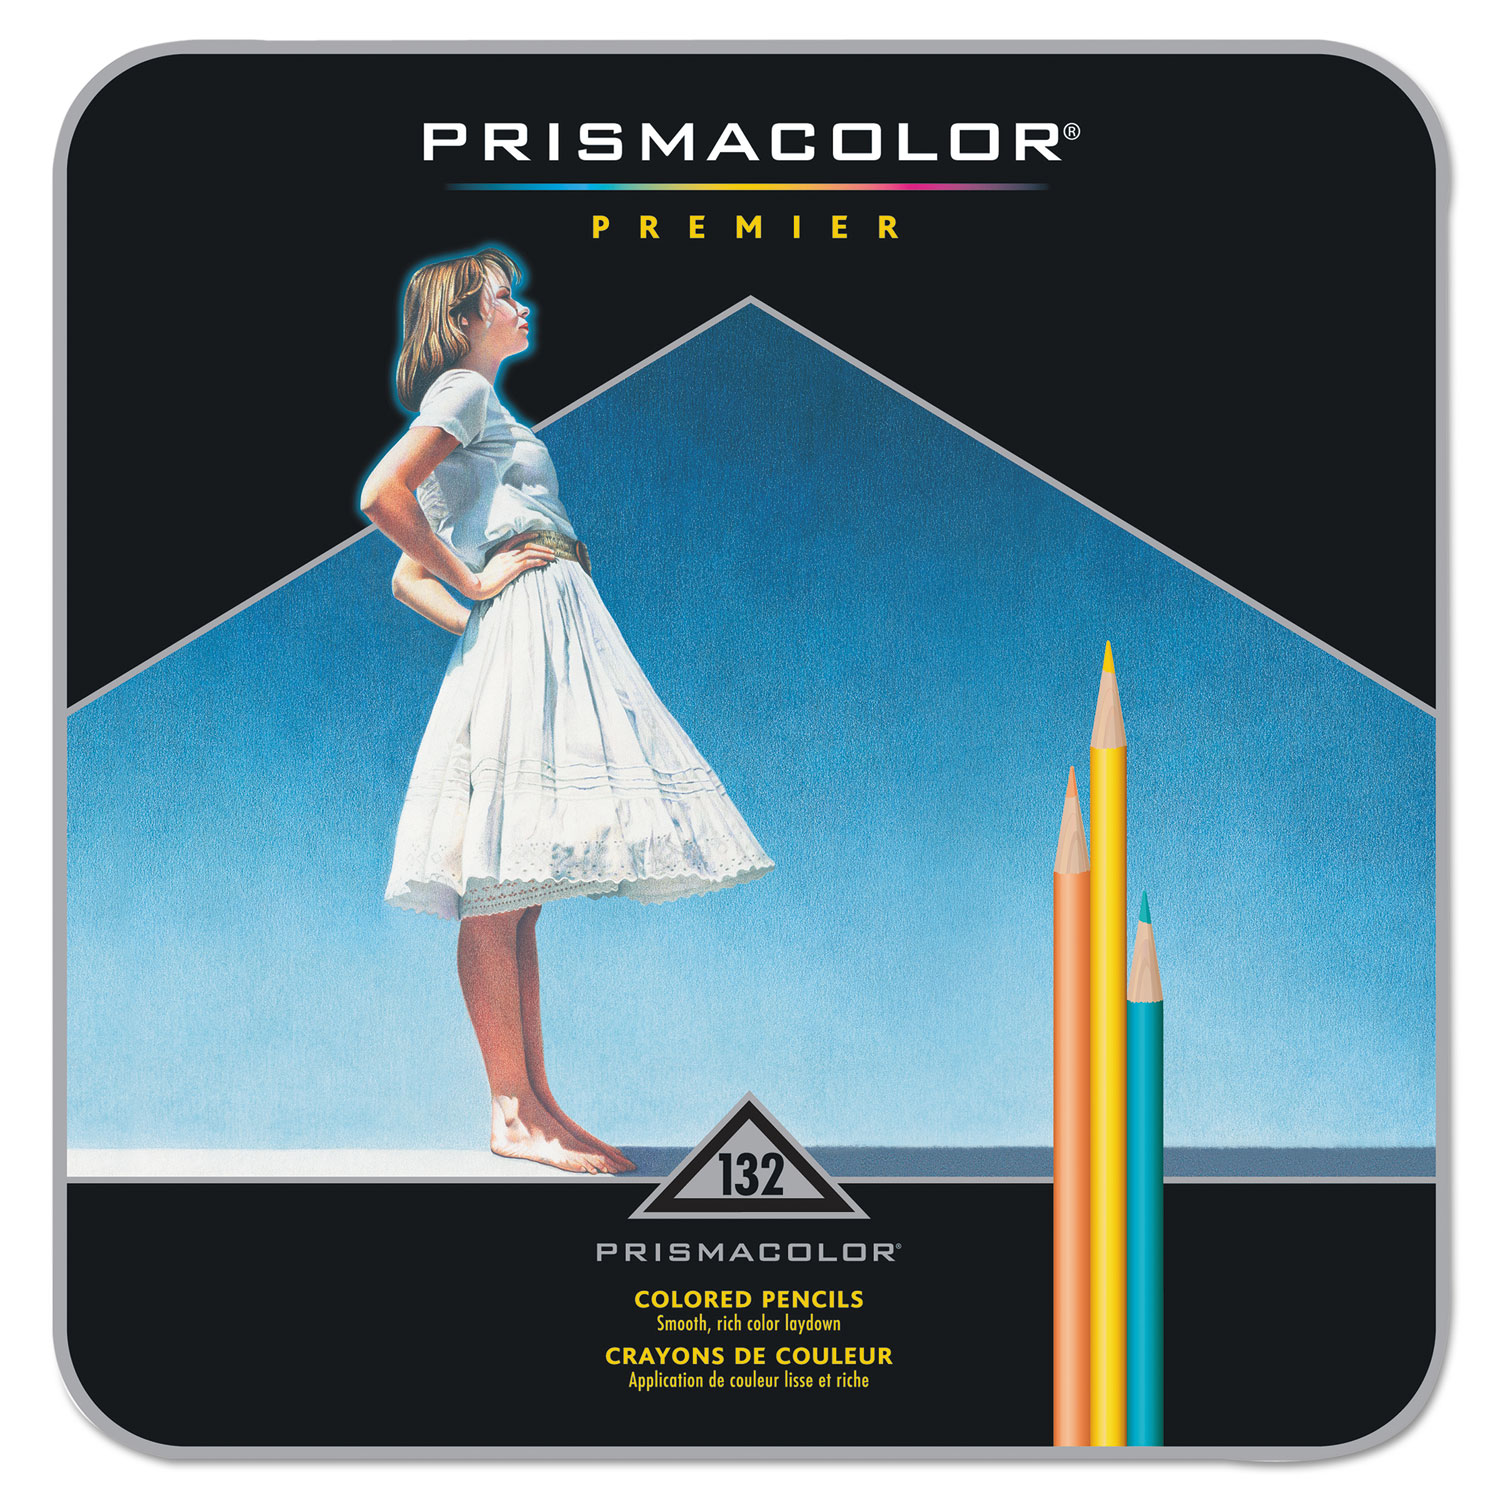 Premier Colored Pencil, 0.7 mm, 2B (#1), Assorted Lead/Barrel Colors, 132/Pack